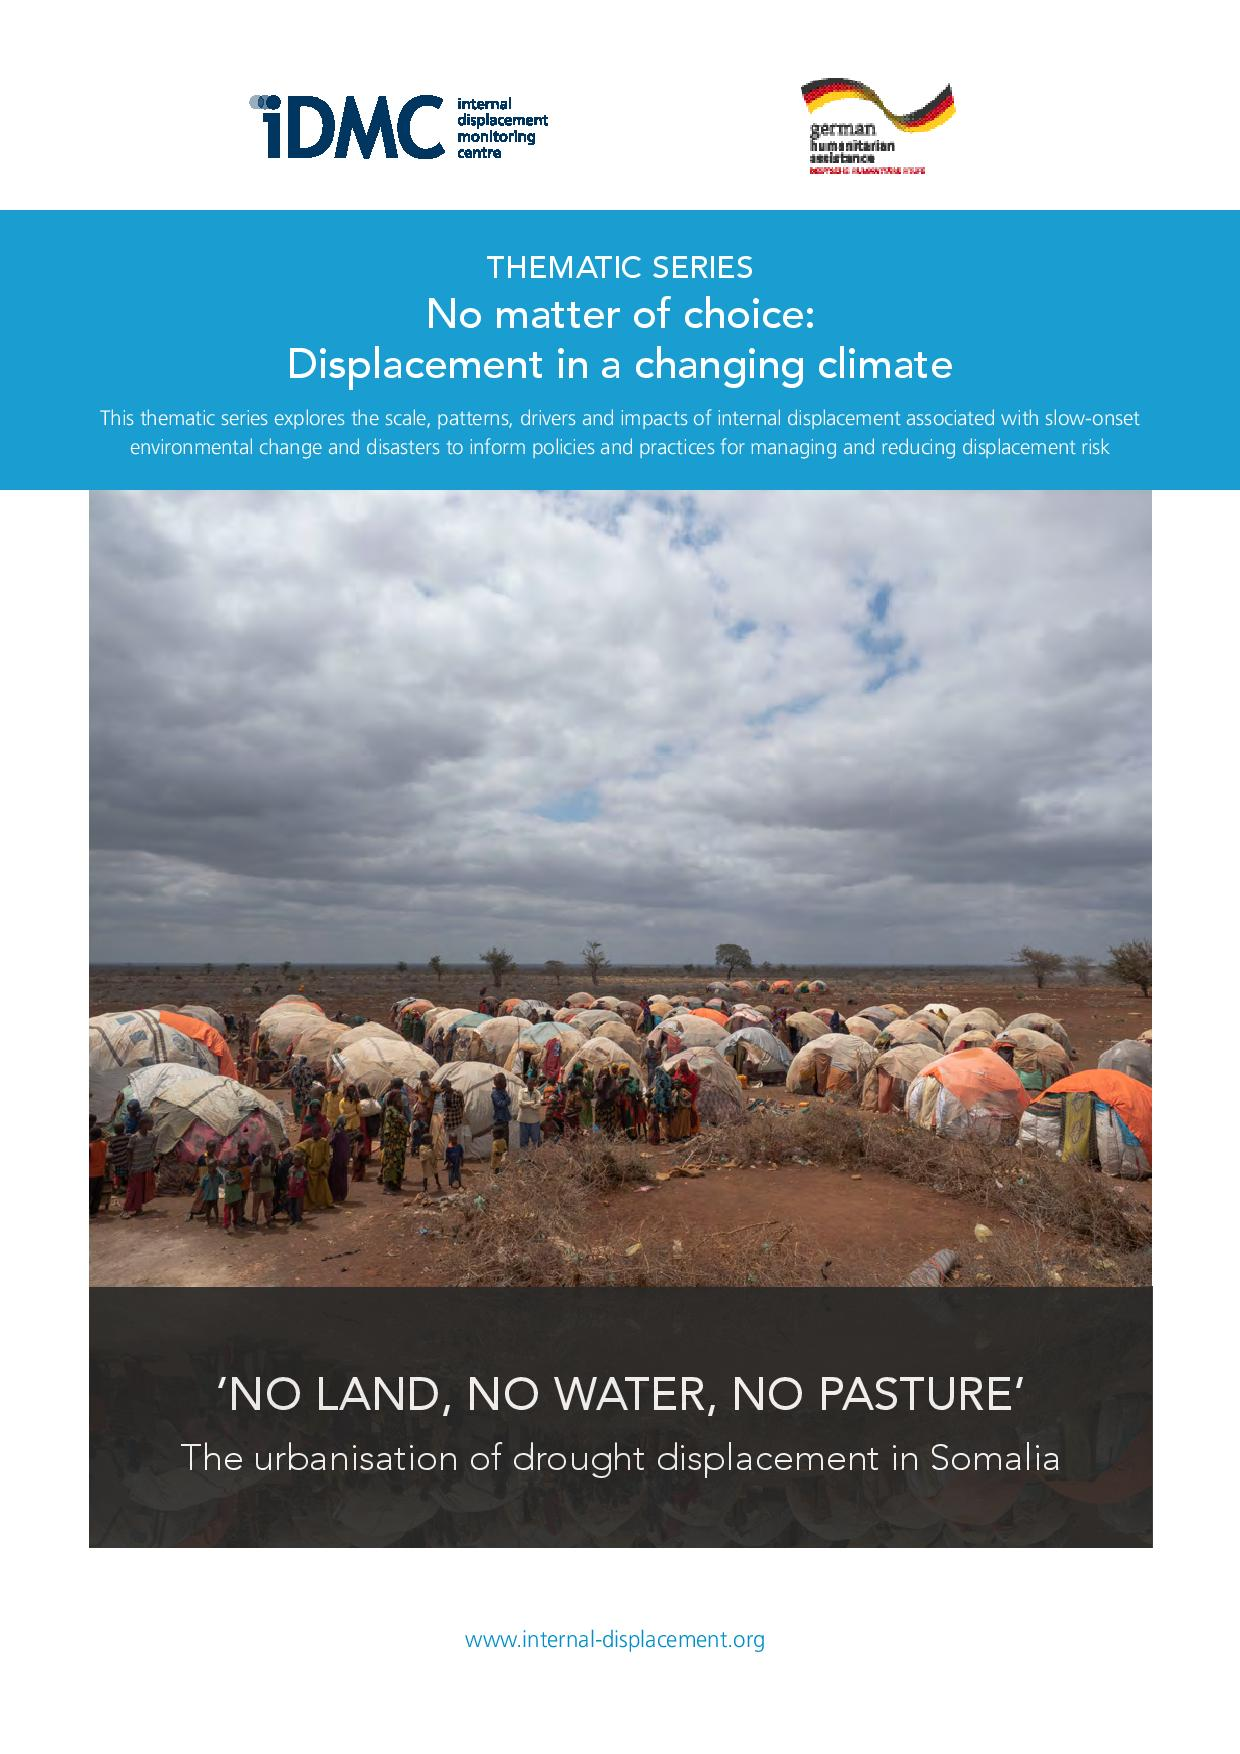 No land, no water, no pasture: the urbanisation of drought displacement in Somalia